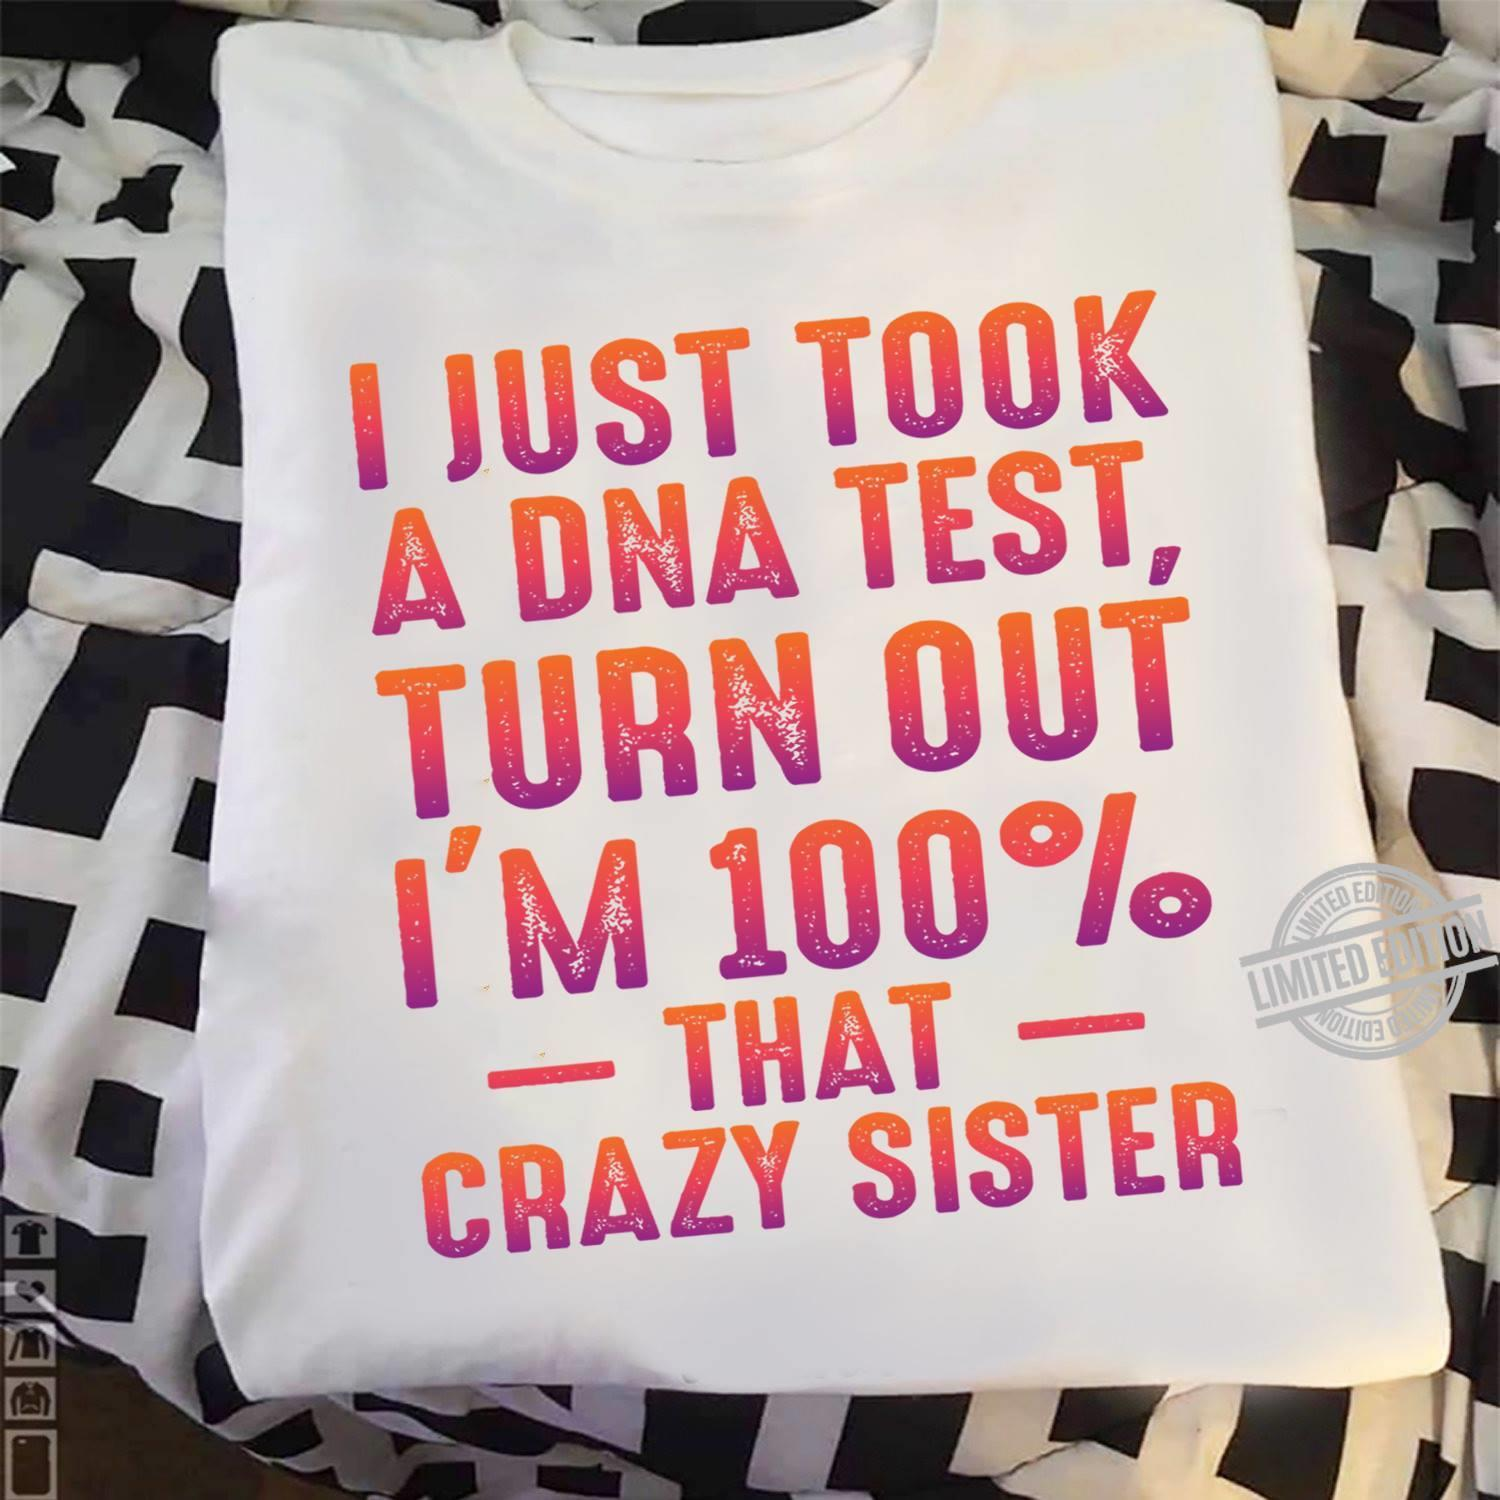 I Just Took A DNA Test Turn Out I'm 100% That Crazy Sister Shirt